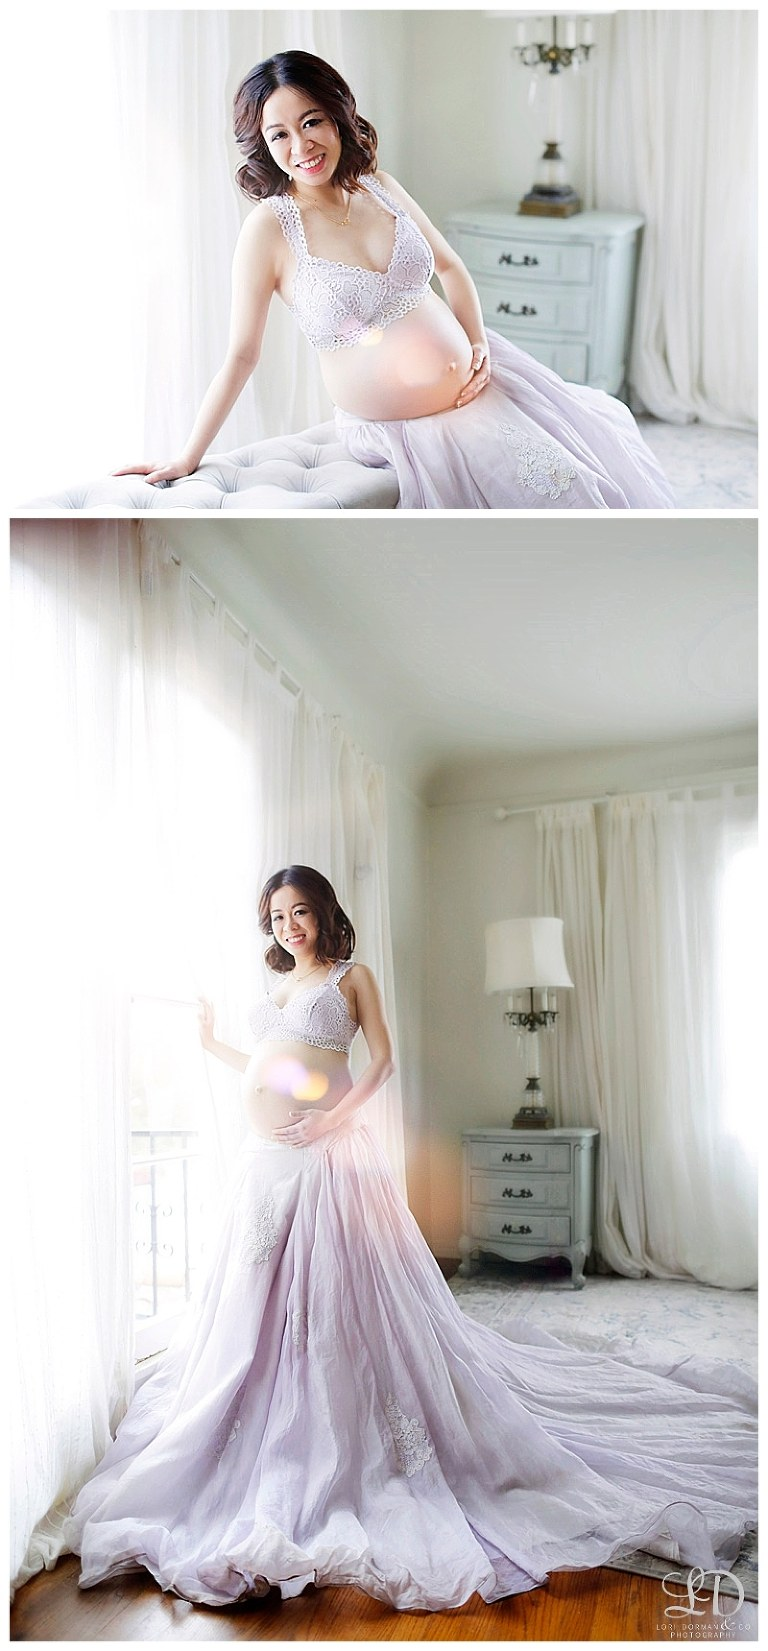 sweet maternity photoshoot-lori dorman photography-maternity boudoir-professional photographer_5163.jpg